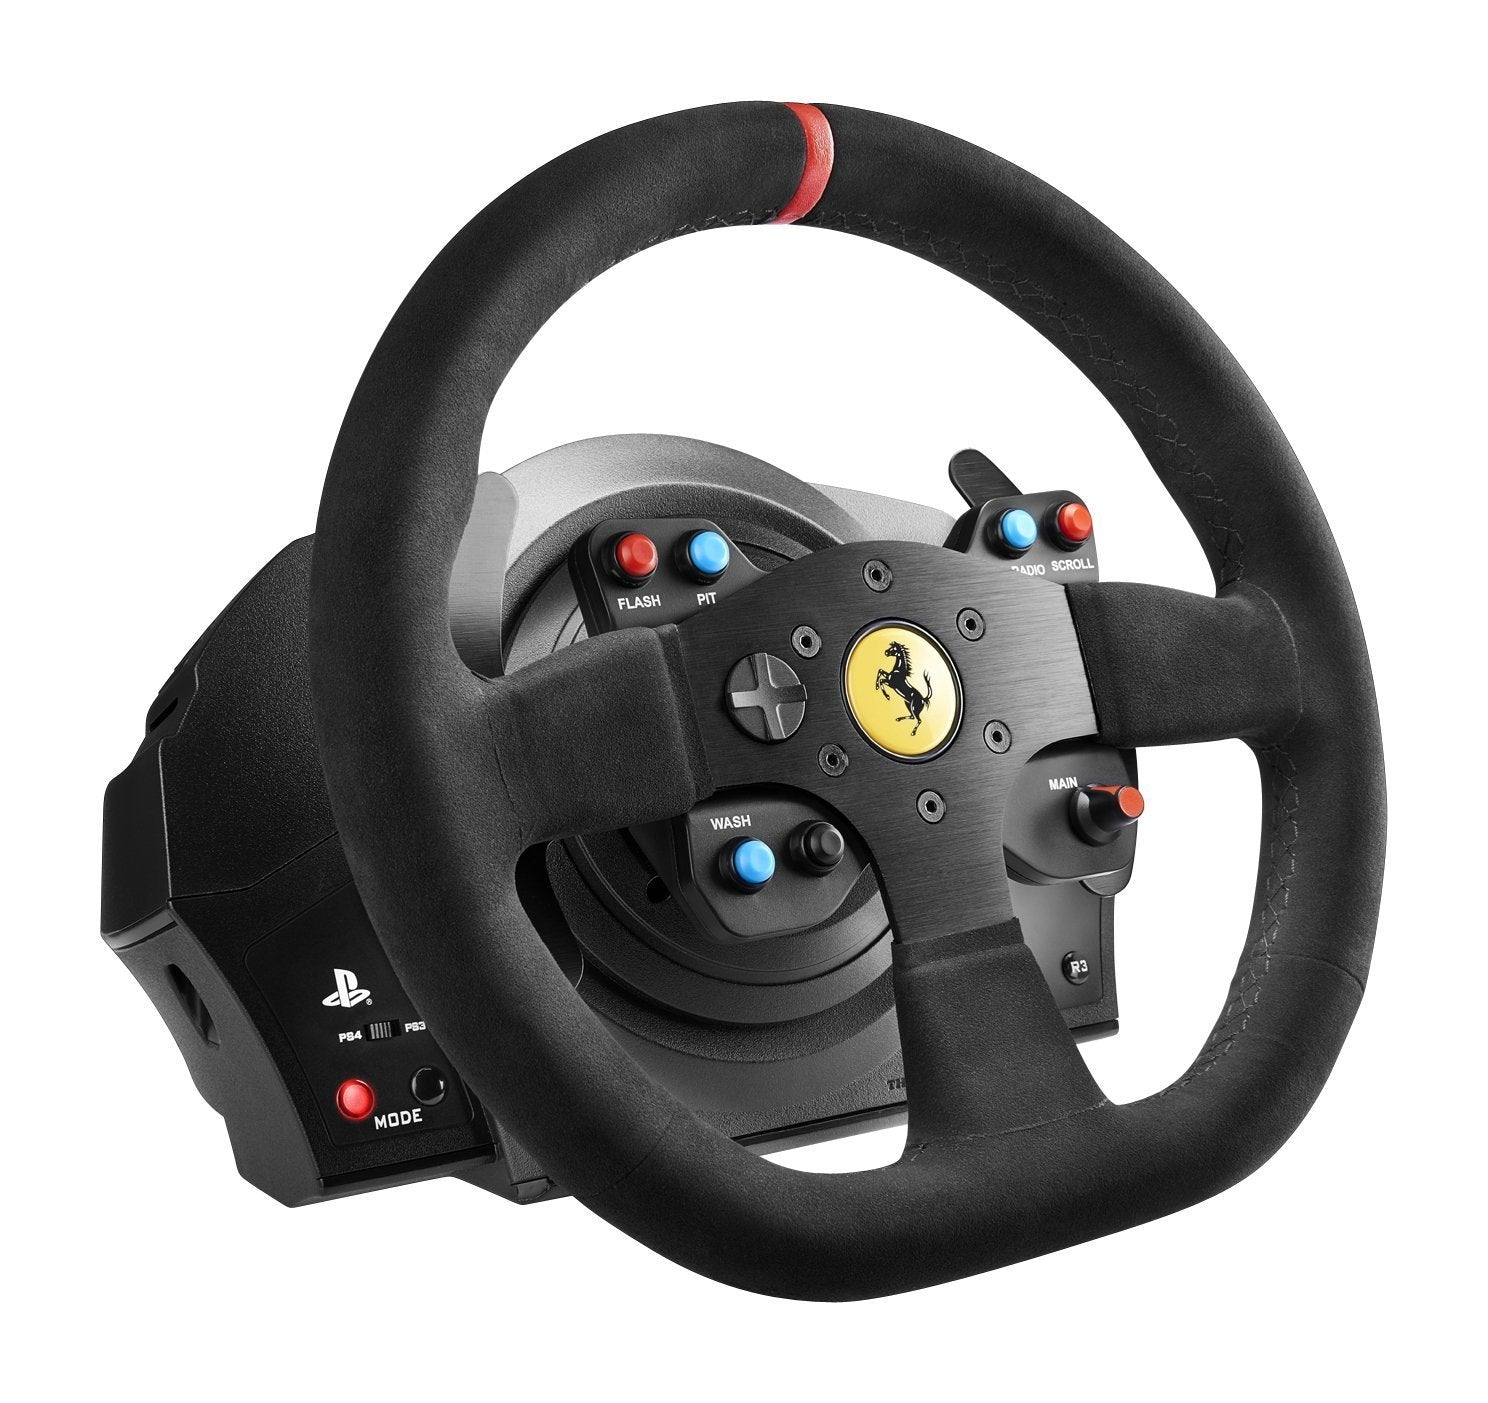 Thrustmaster VG T300 Ferrari Alcantara Edition Racing Wheel (PS3, PS4 & PC) - PS4